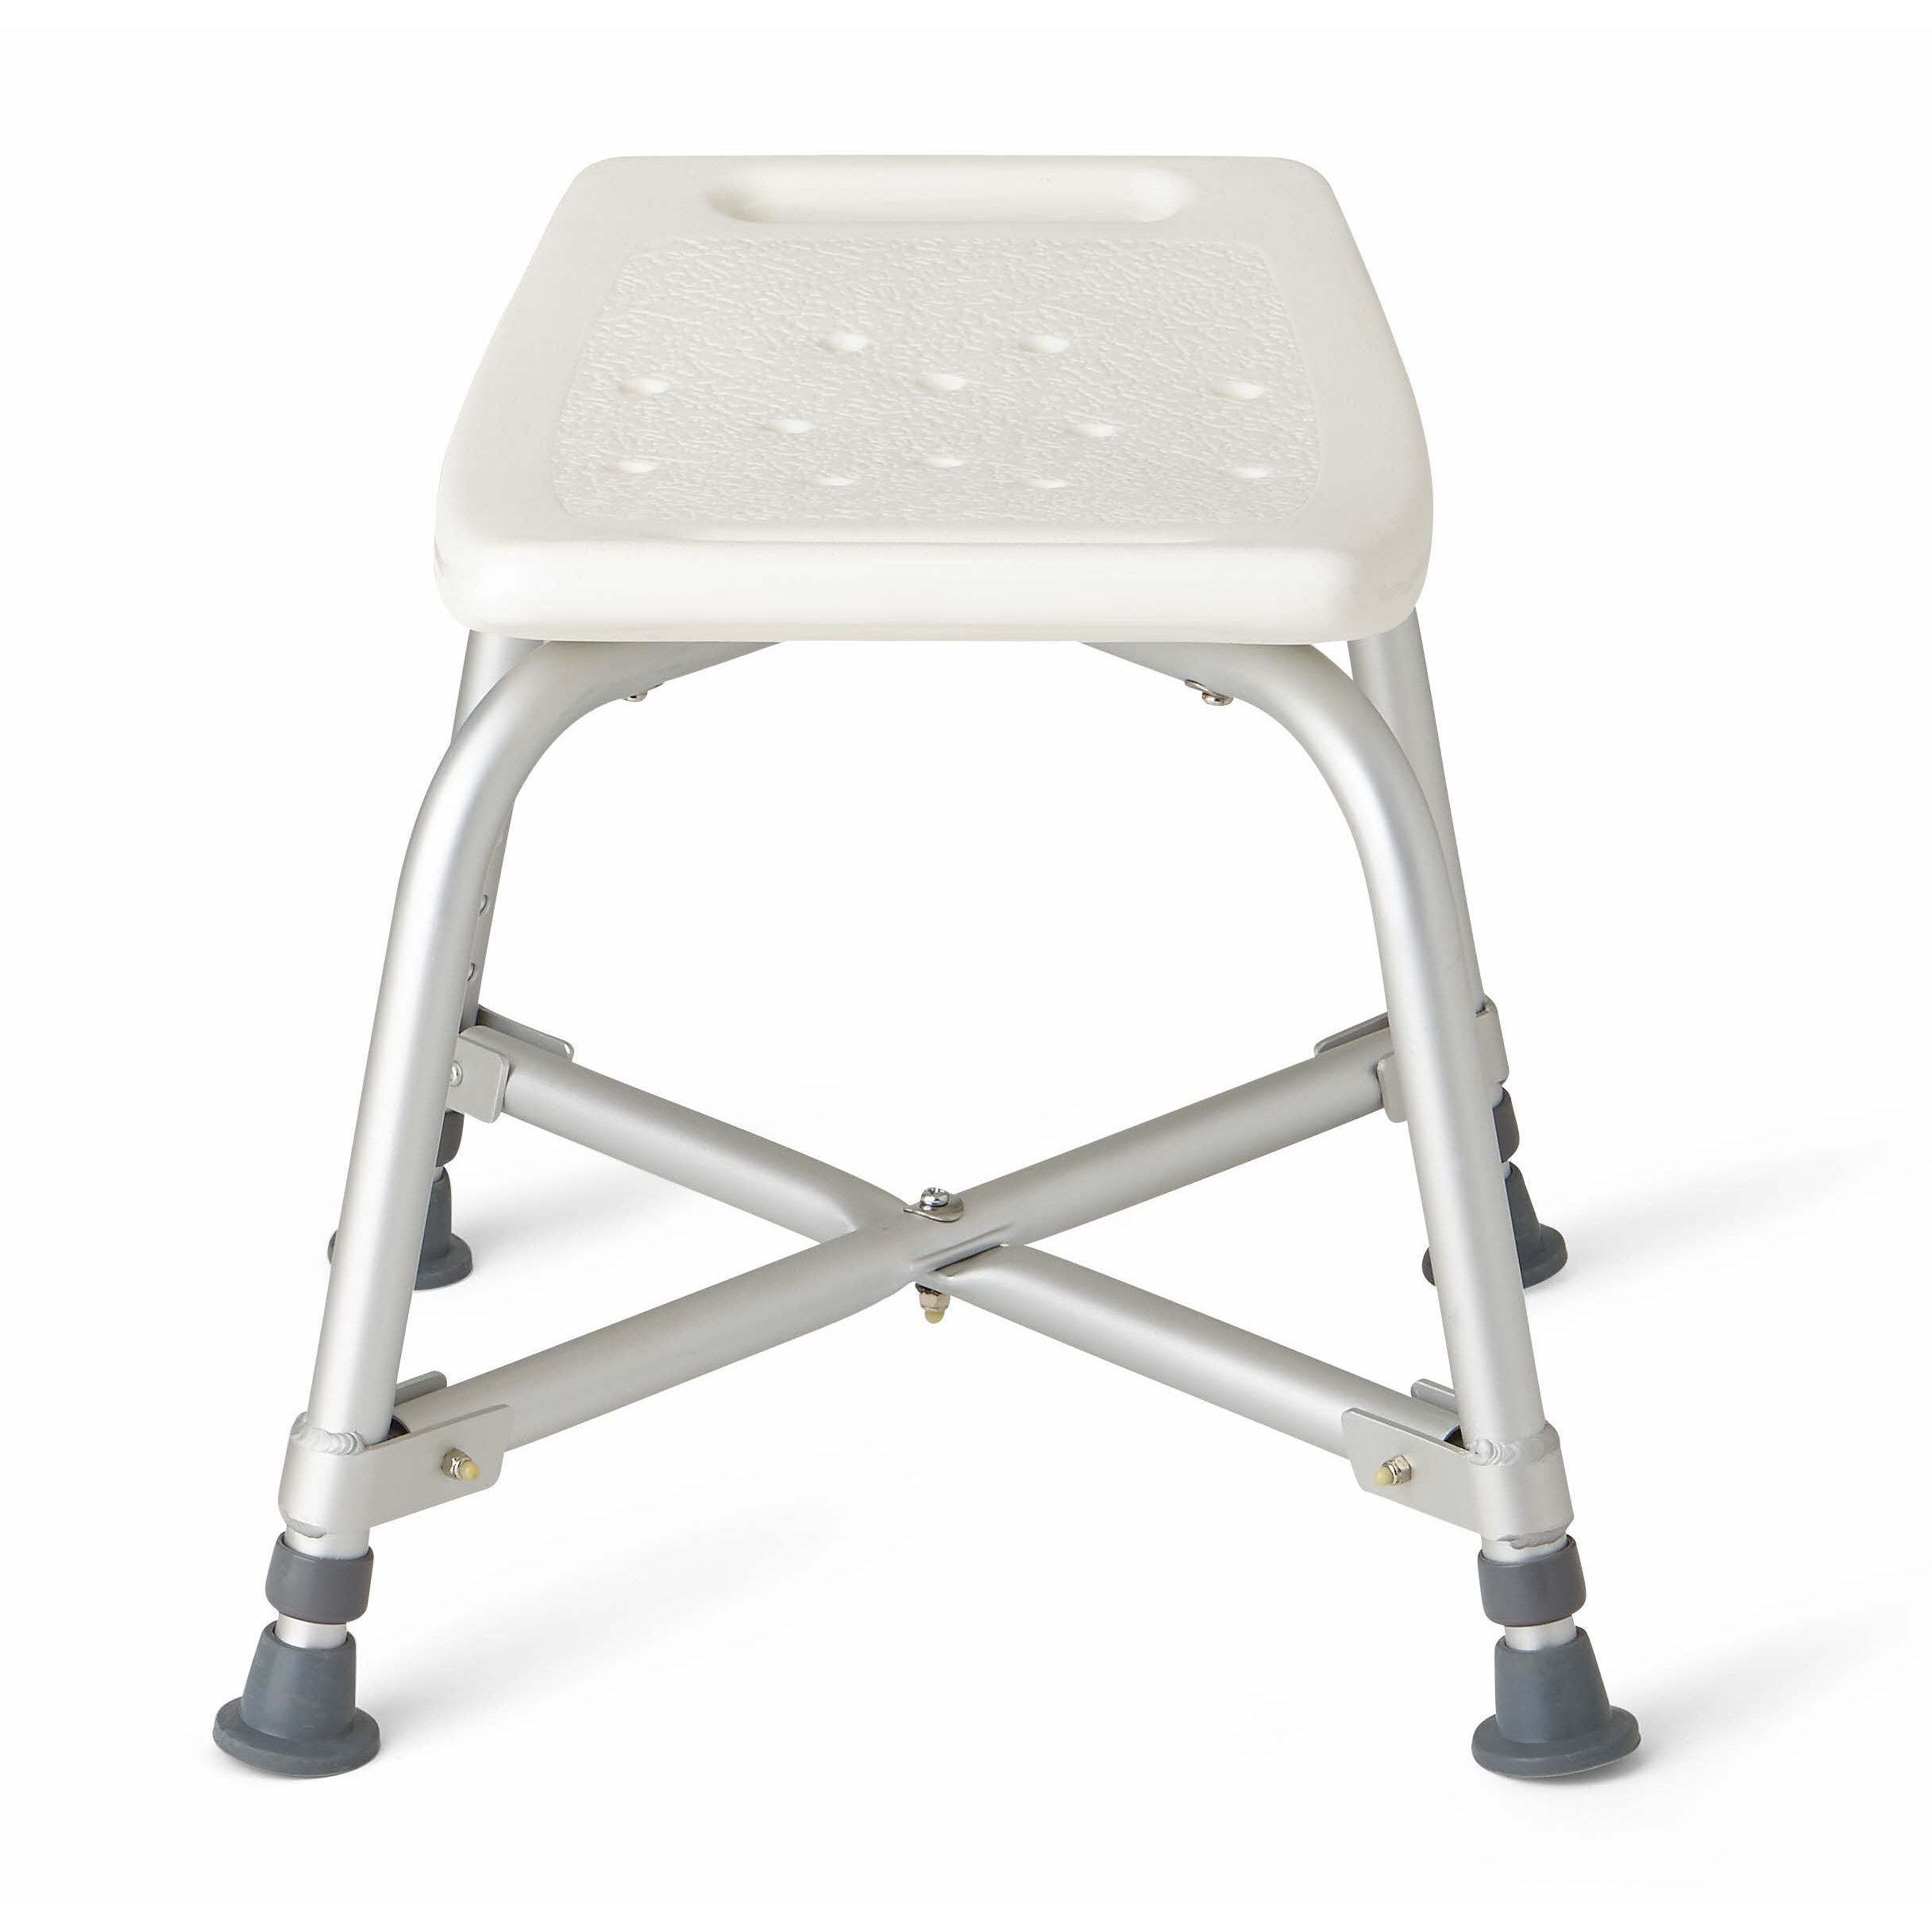 Shop Medline Bariatric Bath Bench - Free Shipping Today - Overstock ...